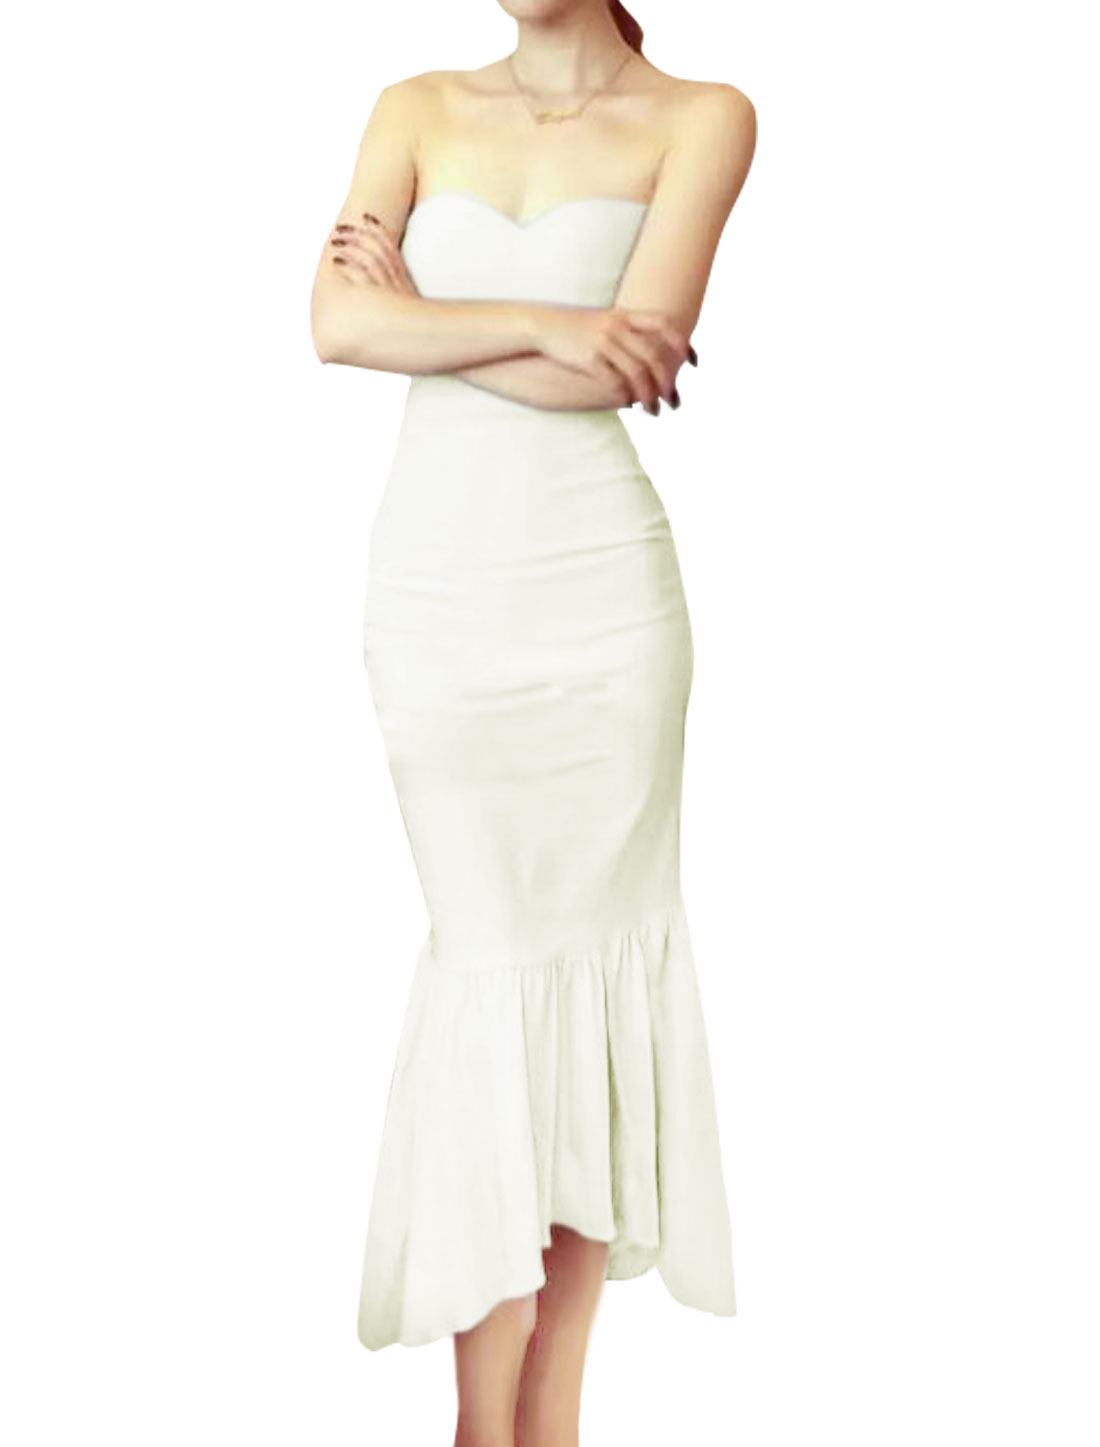 Women Sweetheart Neckline High Low Hem Fishtail Dress White XS